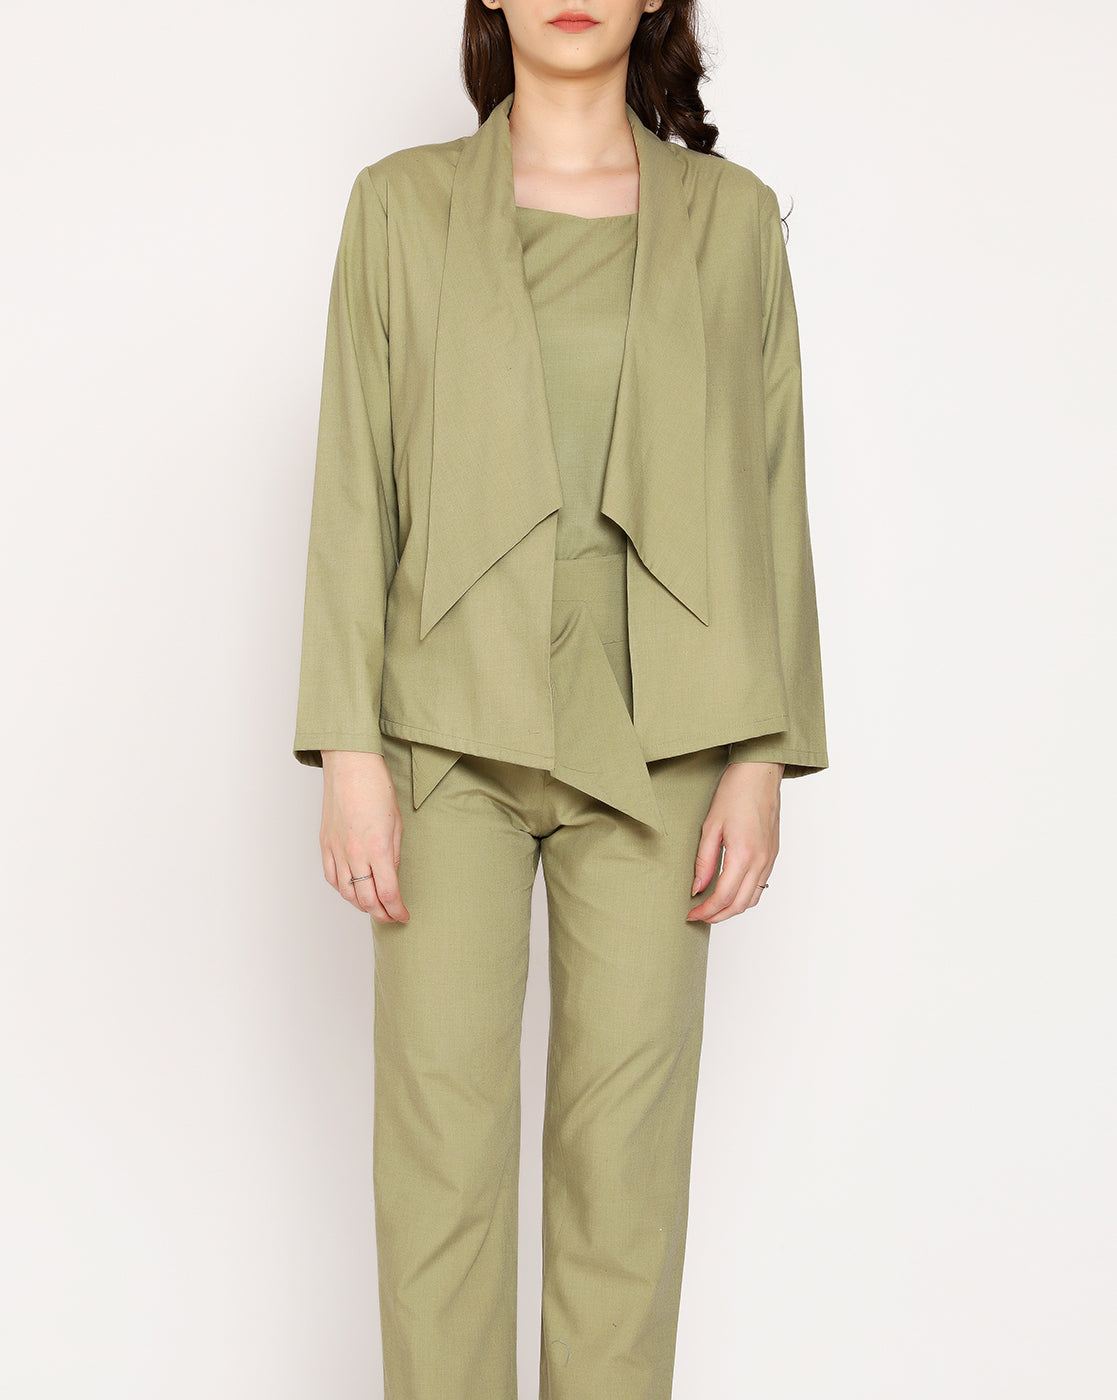 The Femme Fashion Shrug -  Olive Green